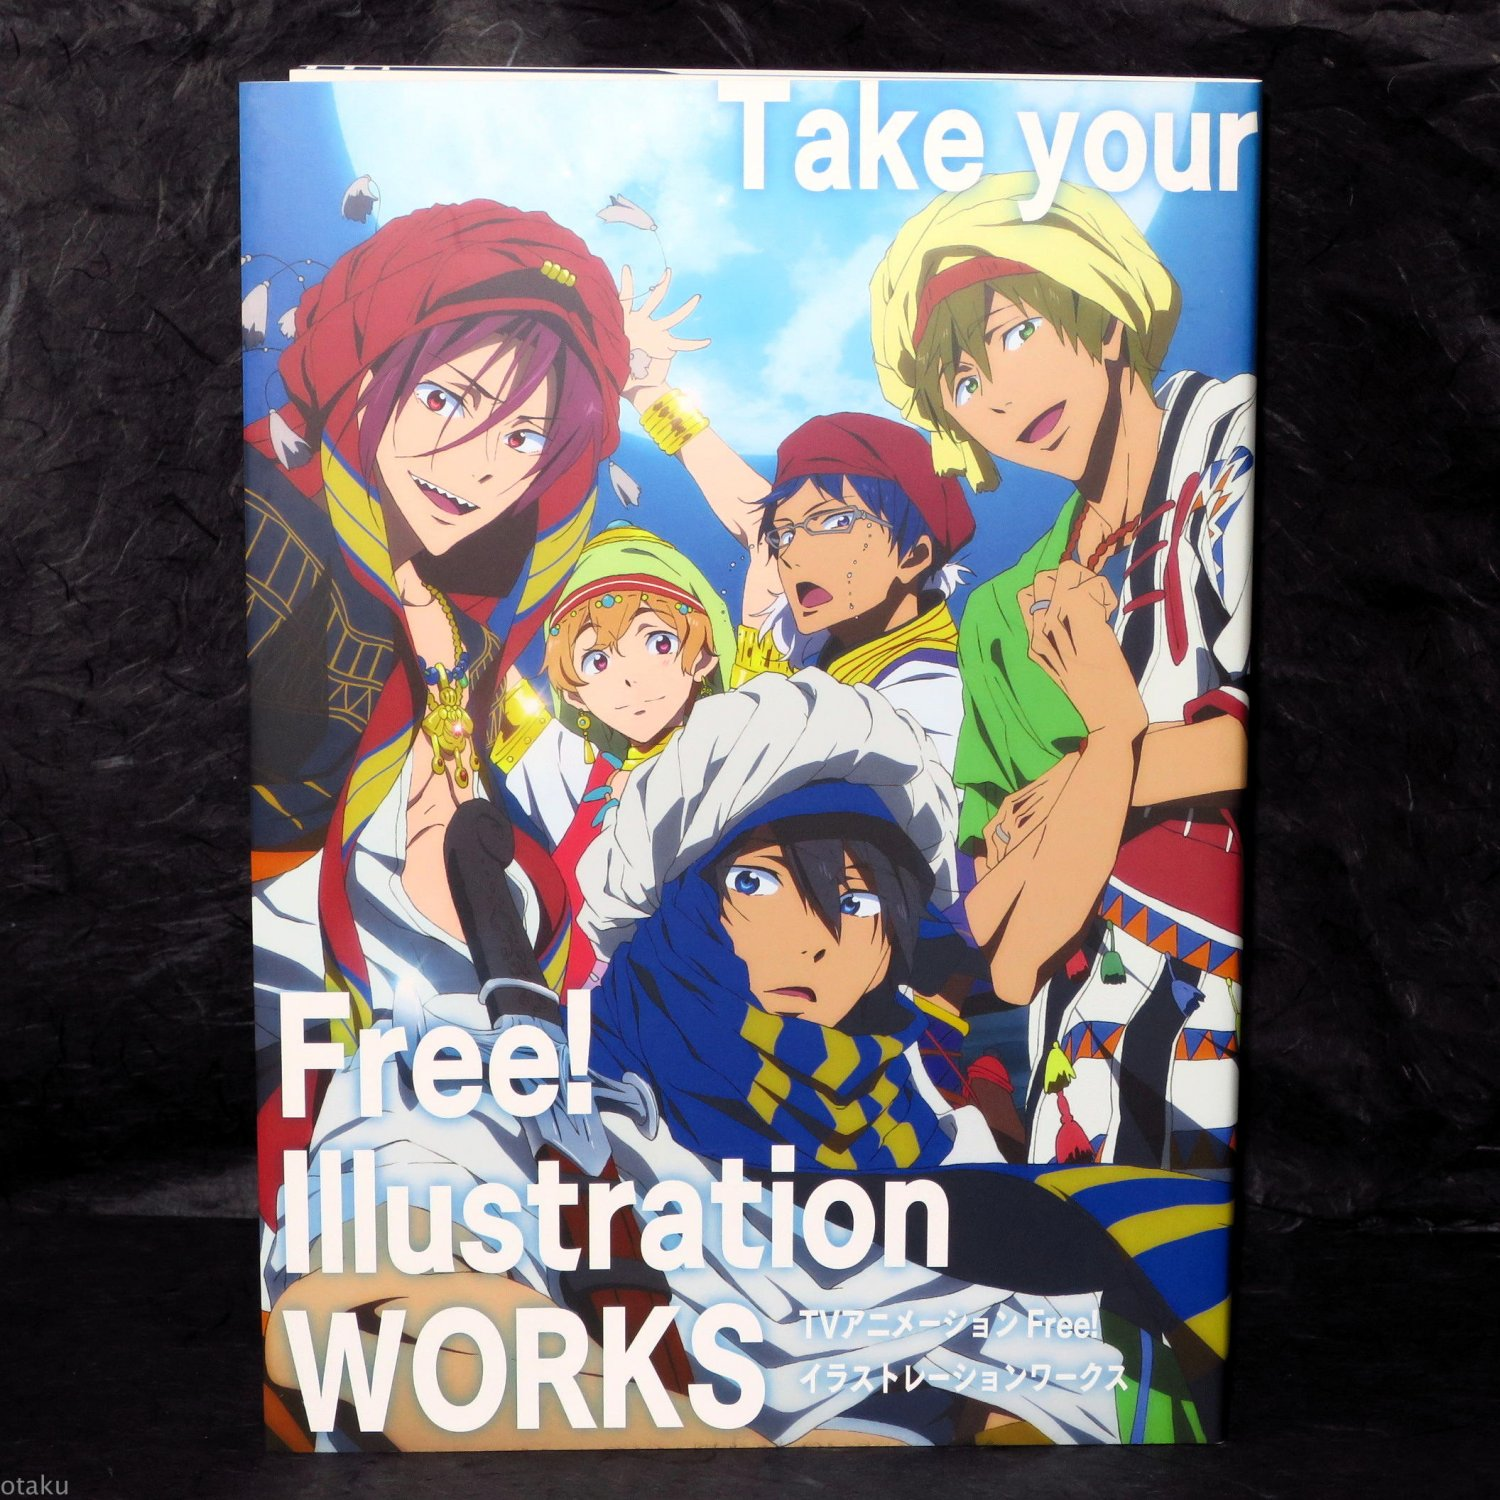 Free Illustration Works Japan Anime Art Book and Drama CD